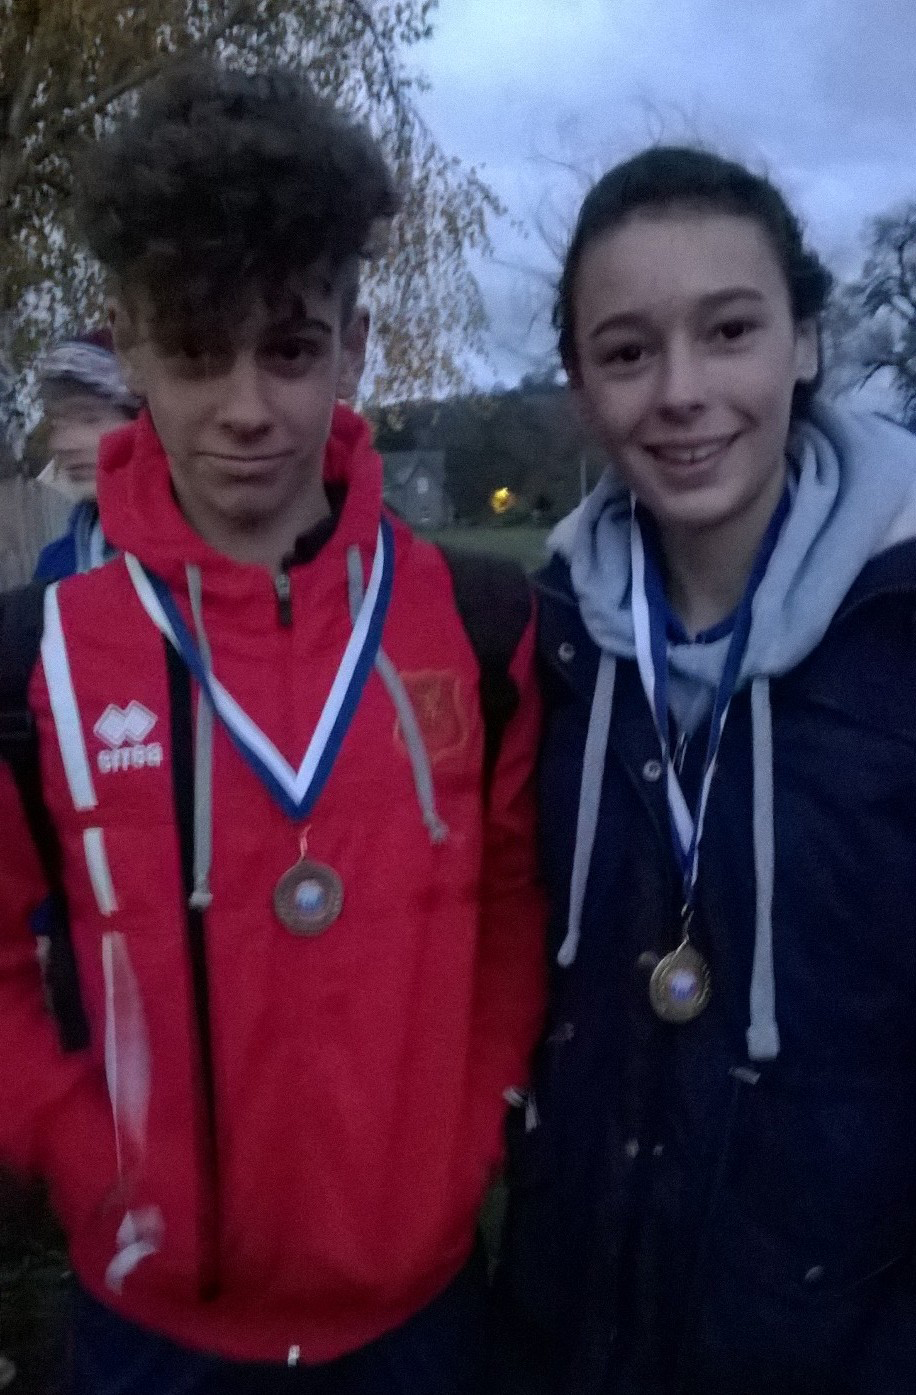 Sam and Tiegan receiving their medals